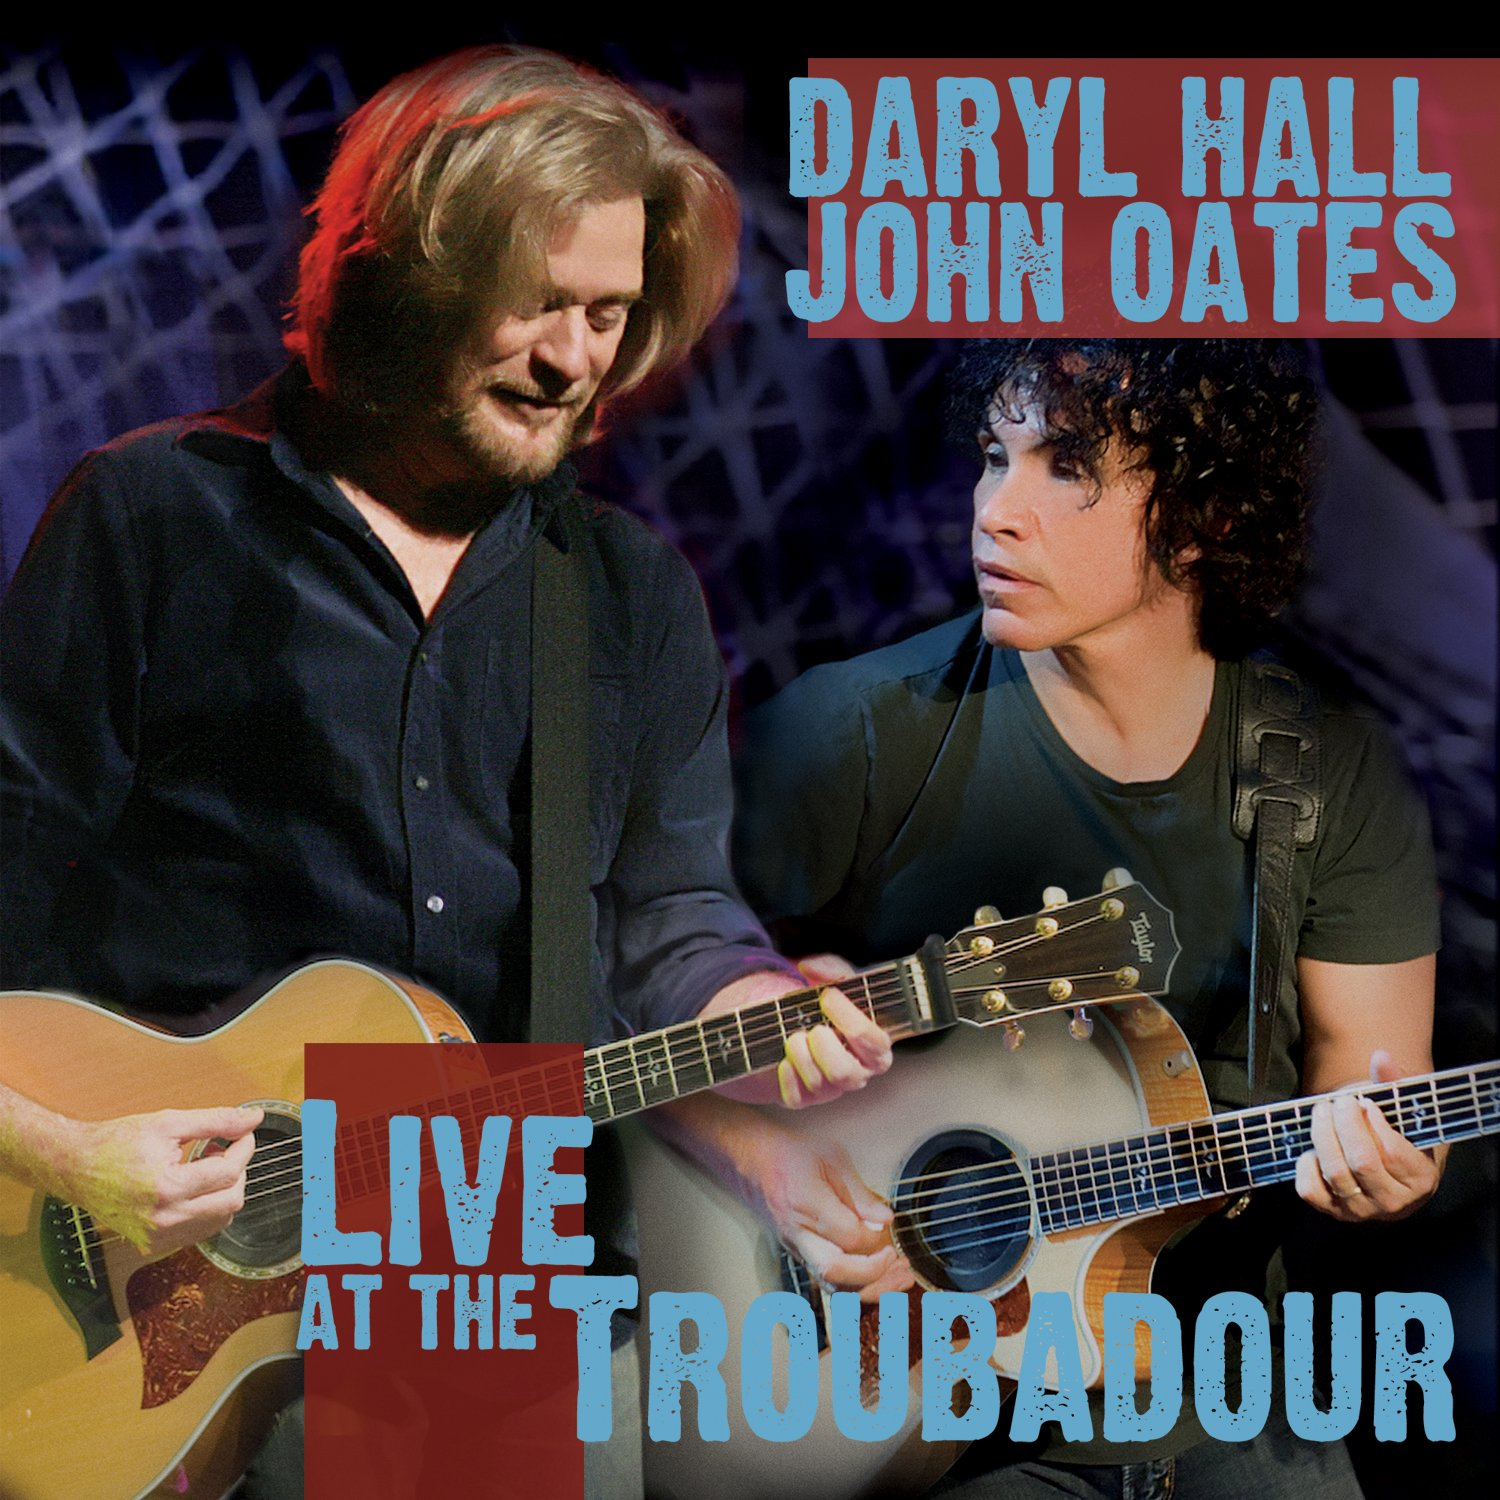 Live At The Troubadour [3 CD] by Shout Factory